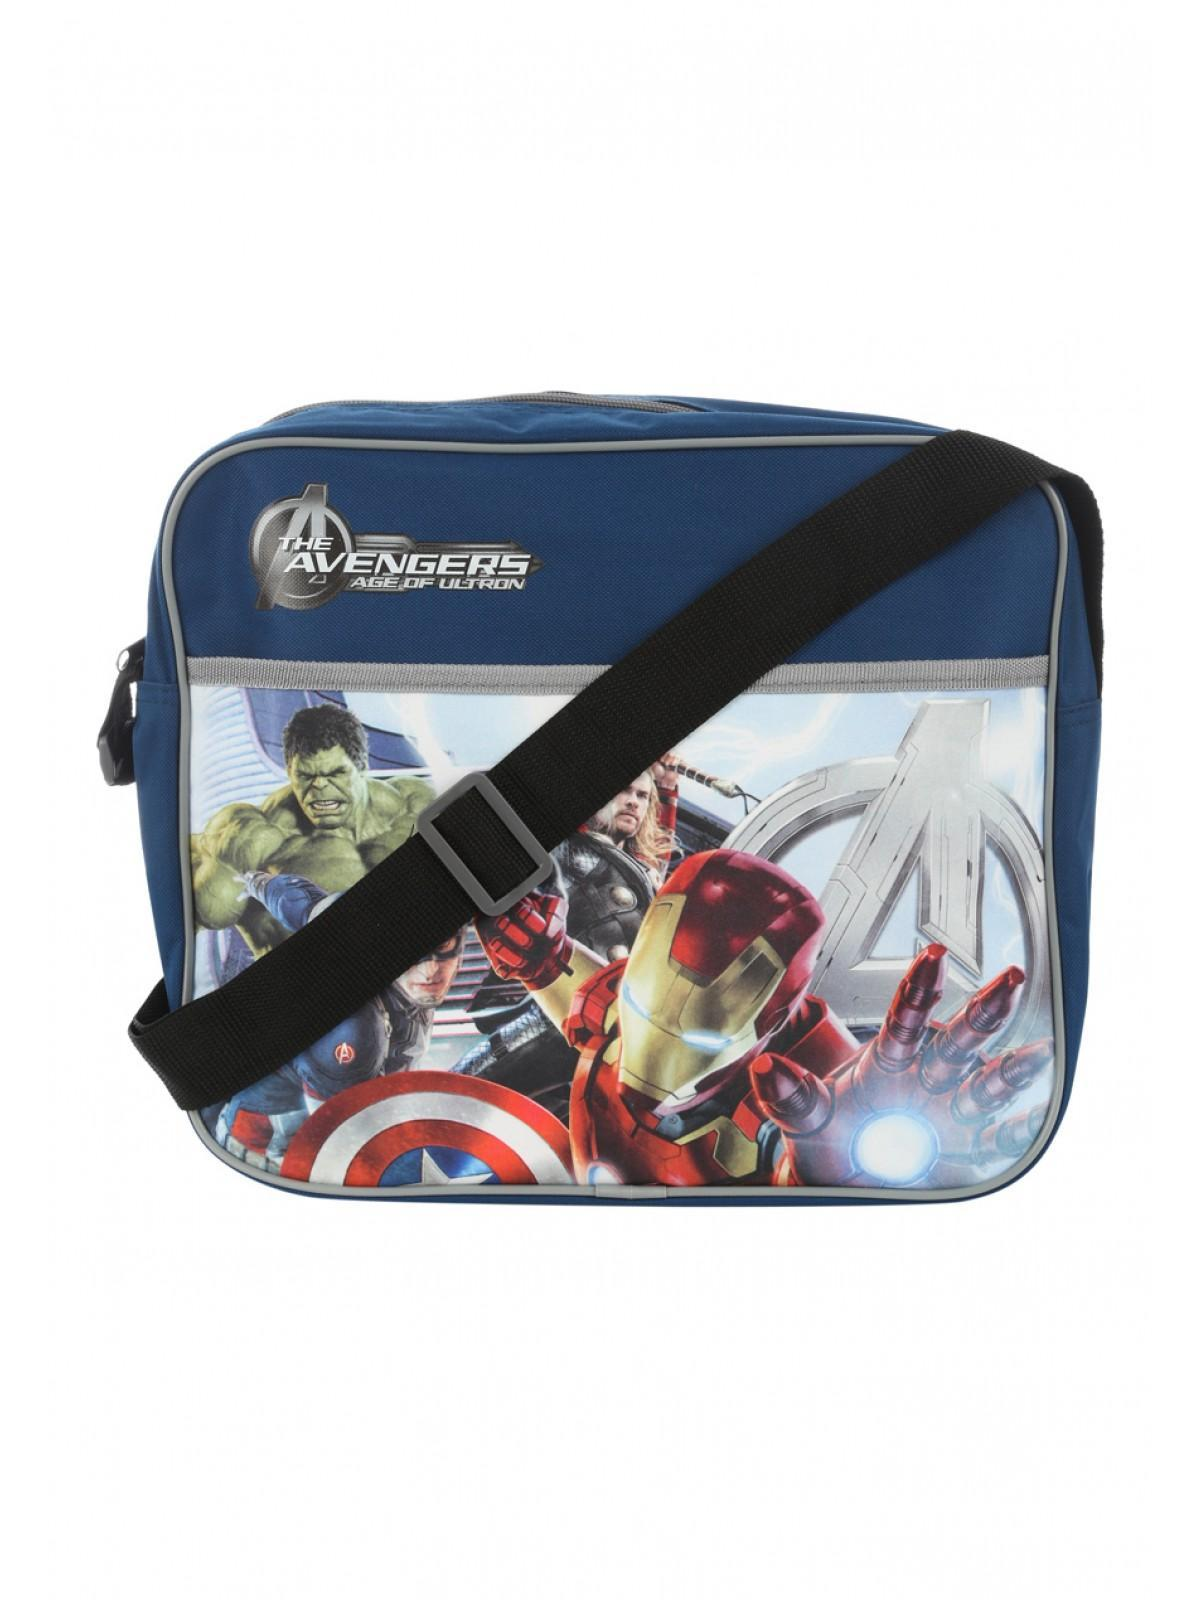 Boys Avengers Messenger Bag | Peacocks